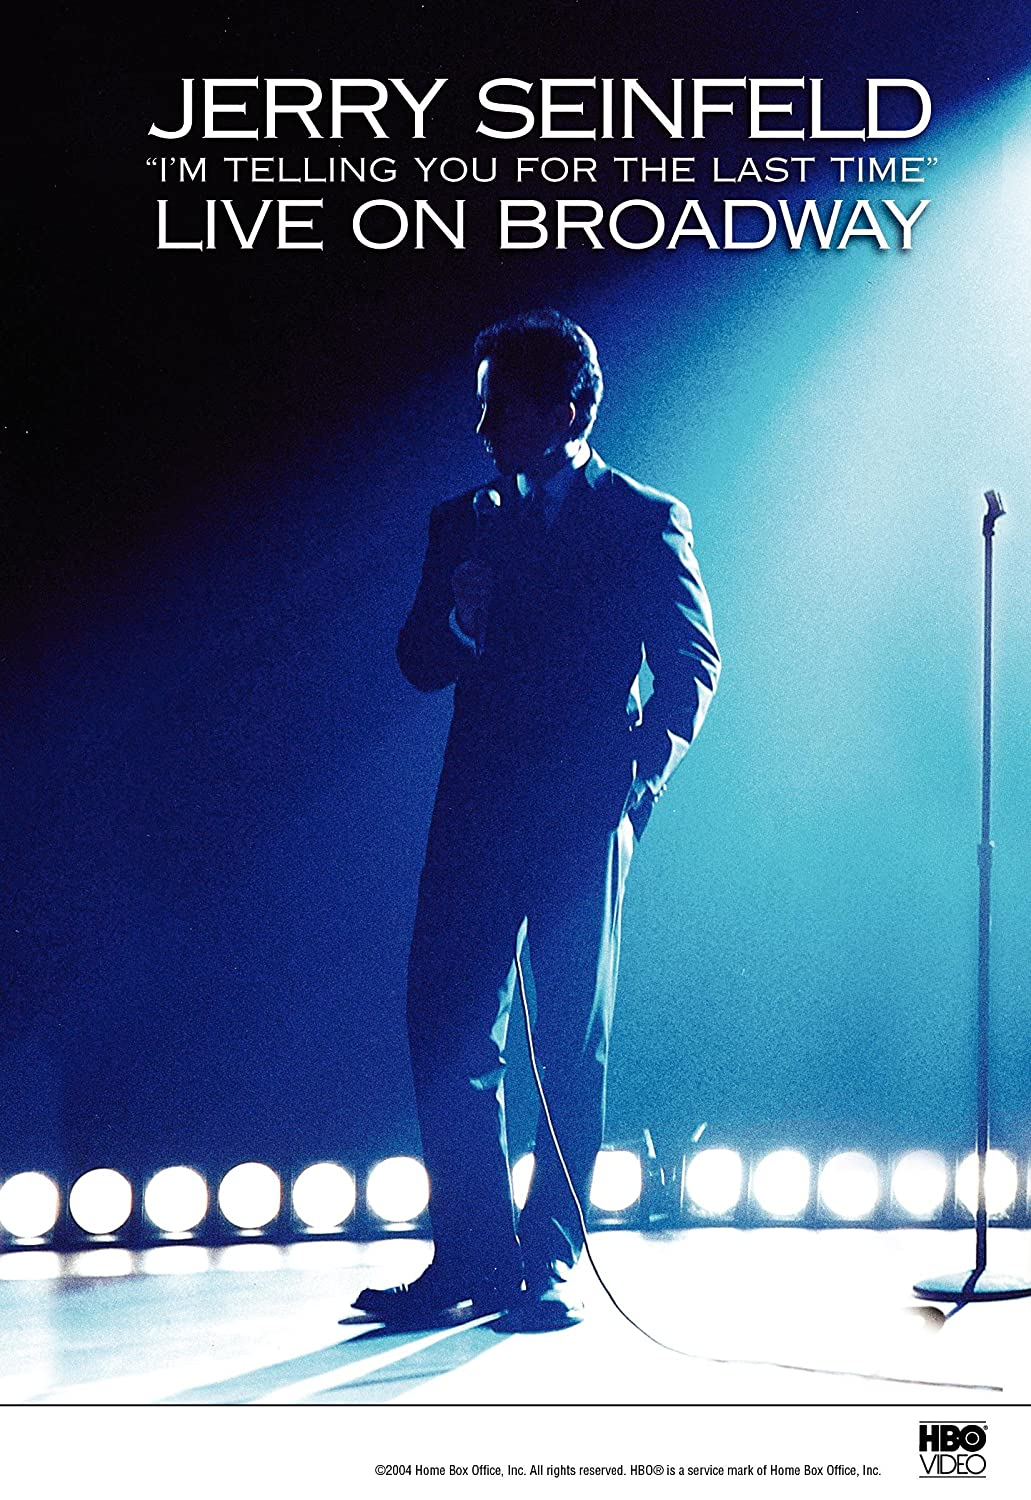 amazon co jp i m telling you for the last time live broadway dvd